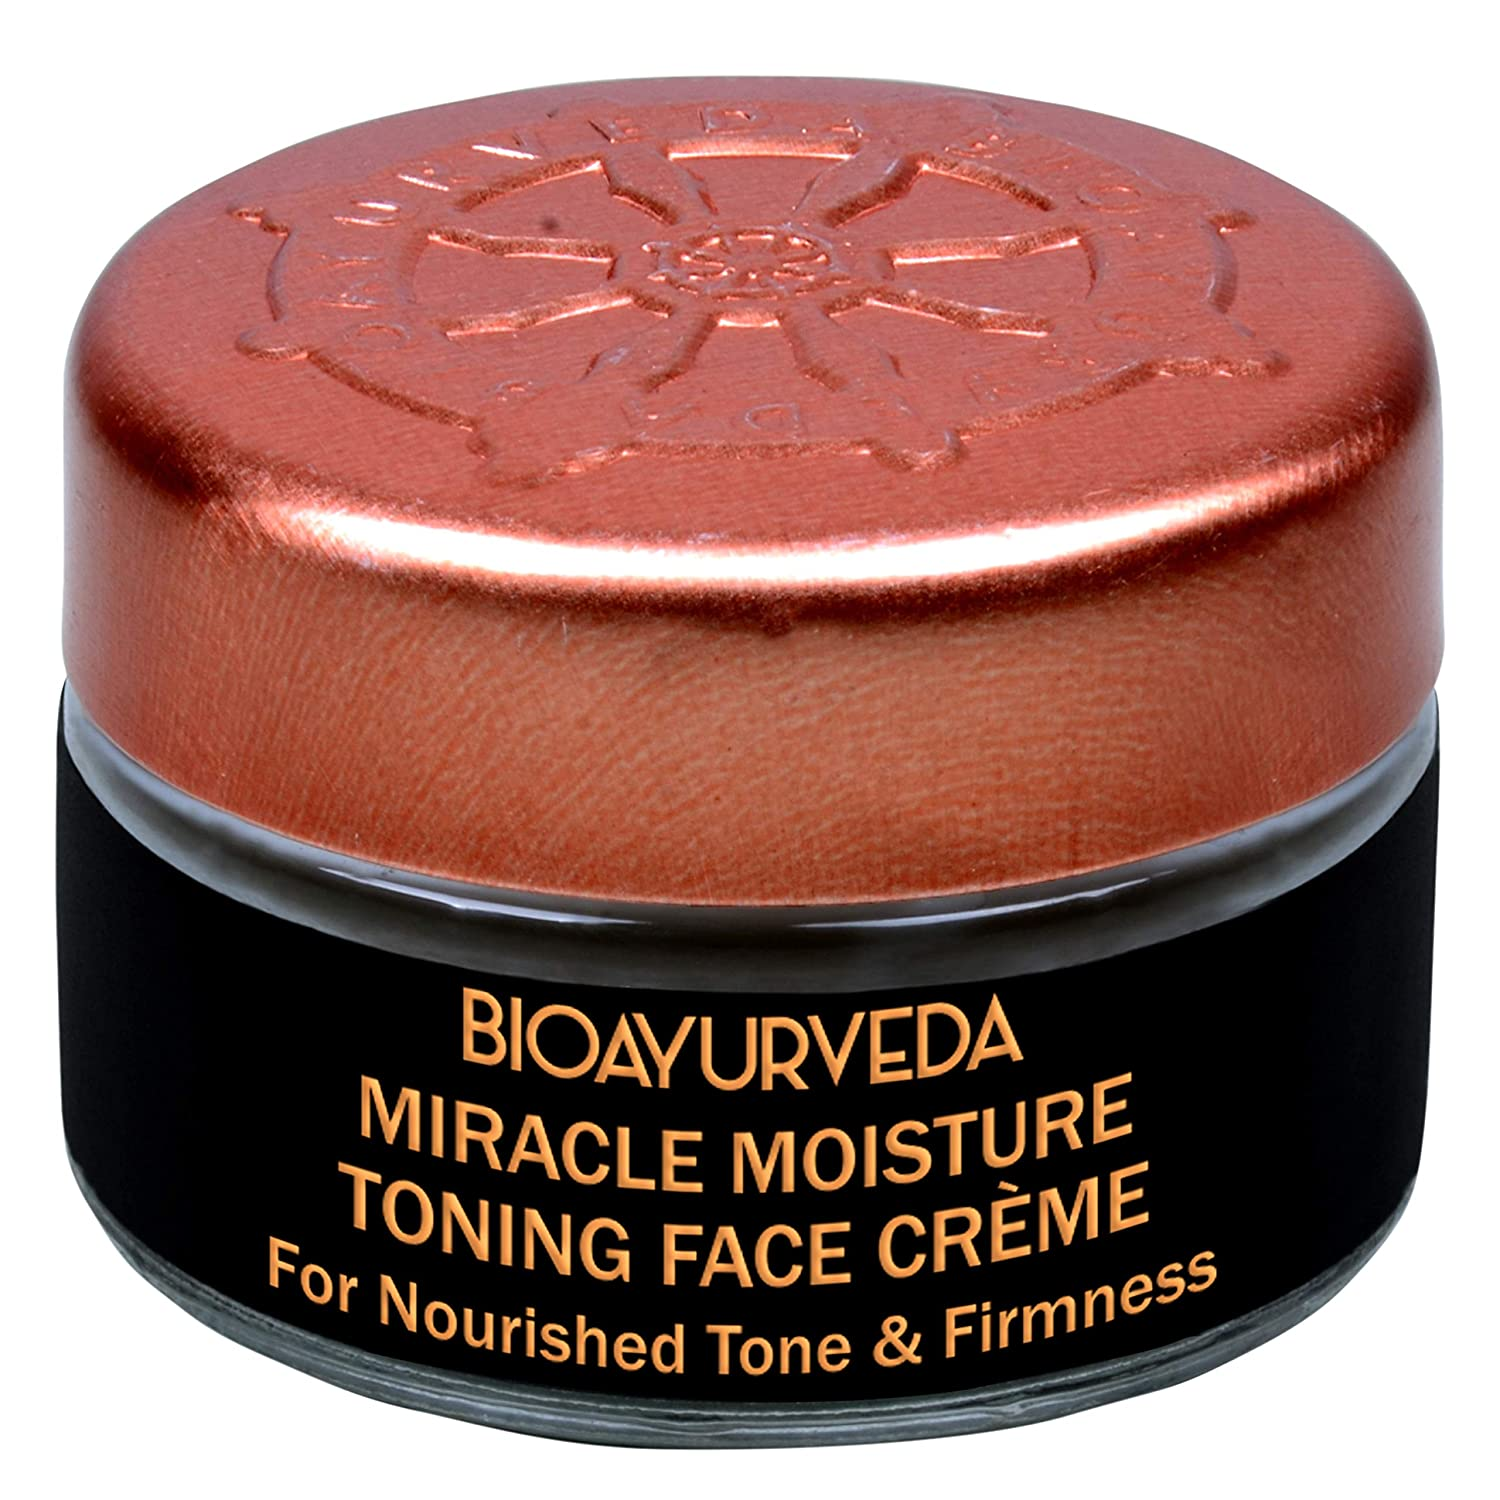 BIOAYURVEDA Miracle Moisture Toning Face Care Cream | Tightening Skin Care, Organic Day & Night Cream Moisturizer-Deep Hydration| for Acne Clogged Pores, Dark Circles, Fine Lines, Blemishes (0.7 oz)